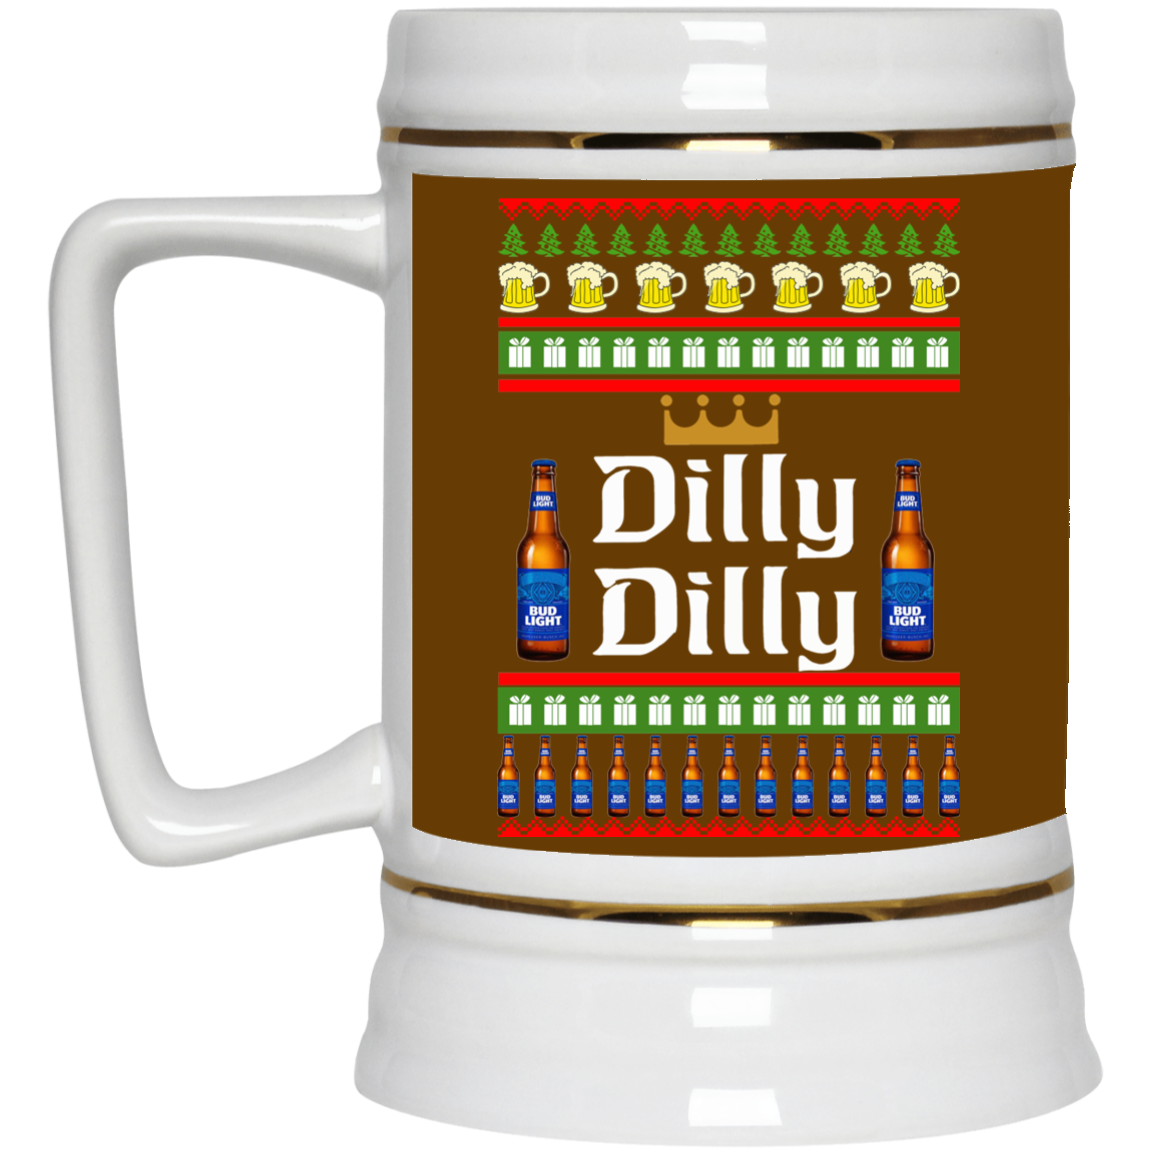 image 18 - Dilly Dilly Christmas Mug, Beer Stain